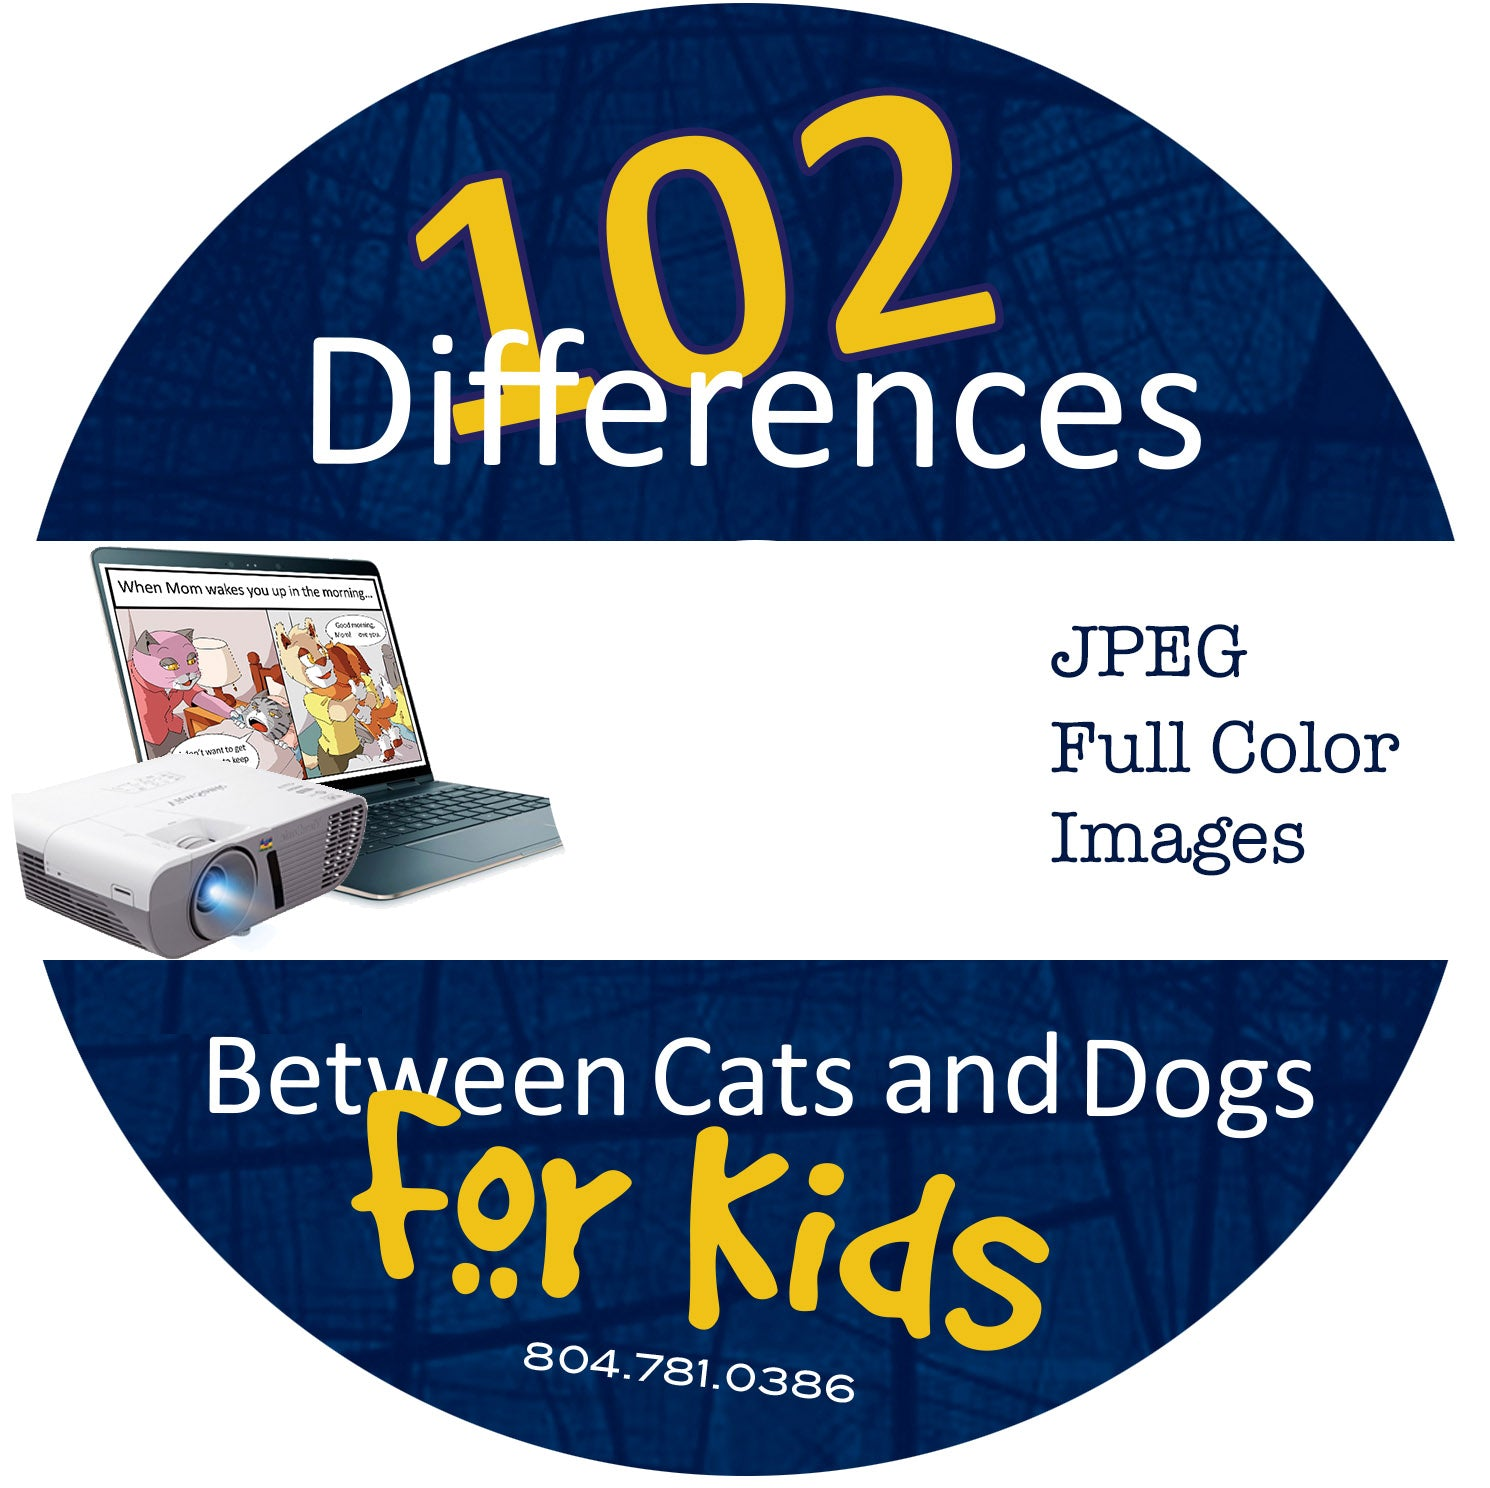 102 Differences Between Cats and Dogs:  Color Cartoons - CD